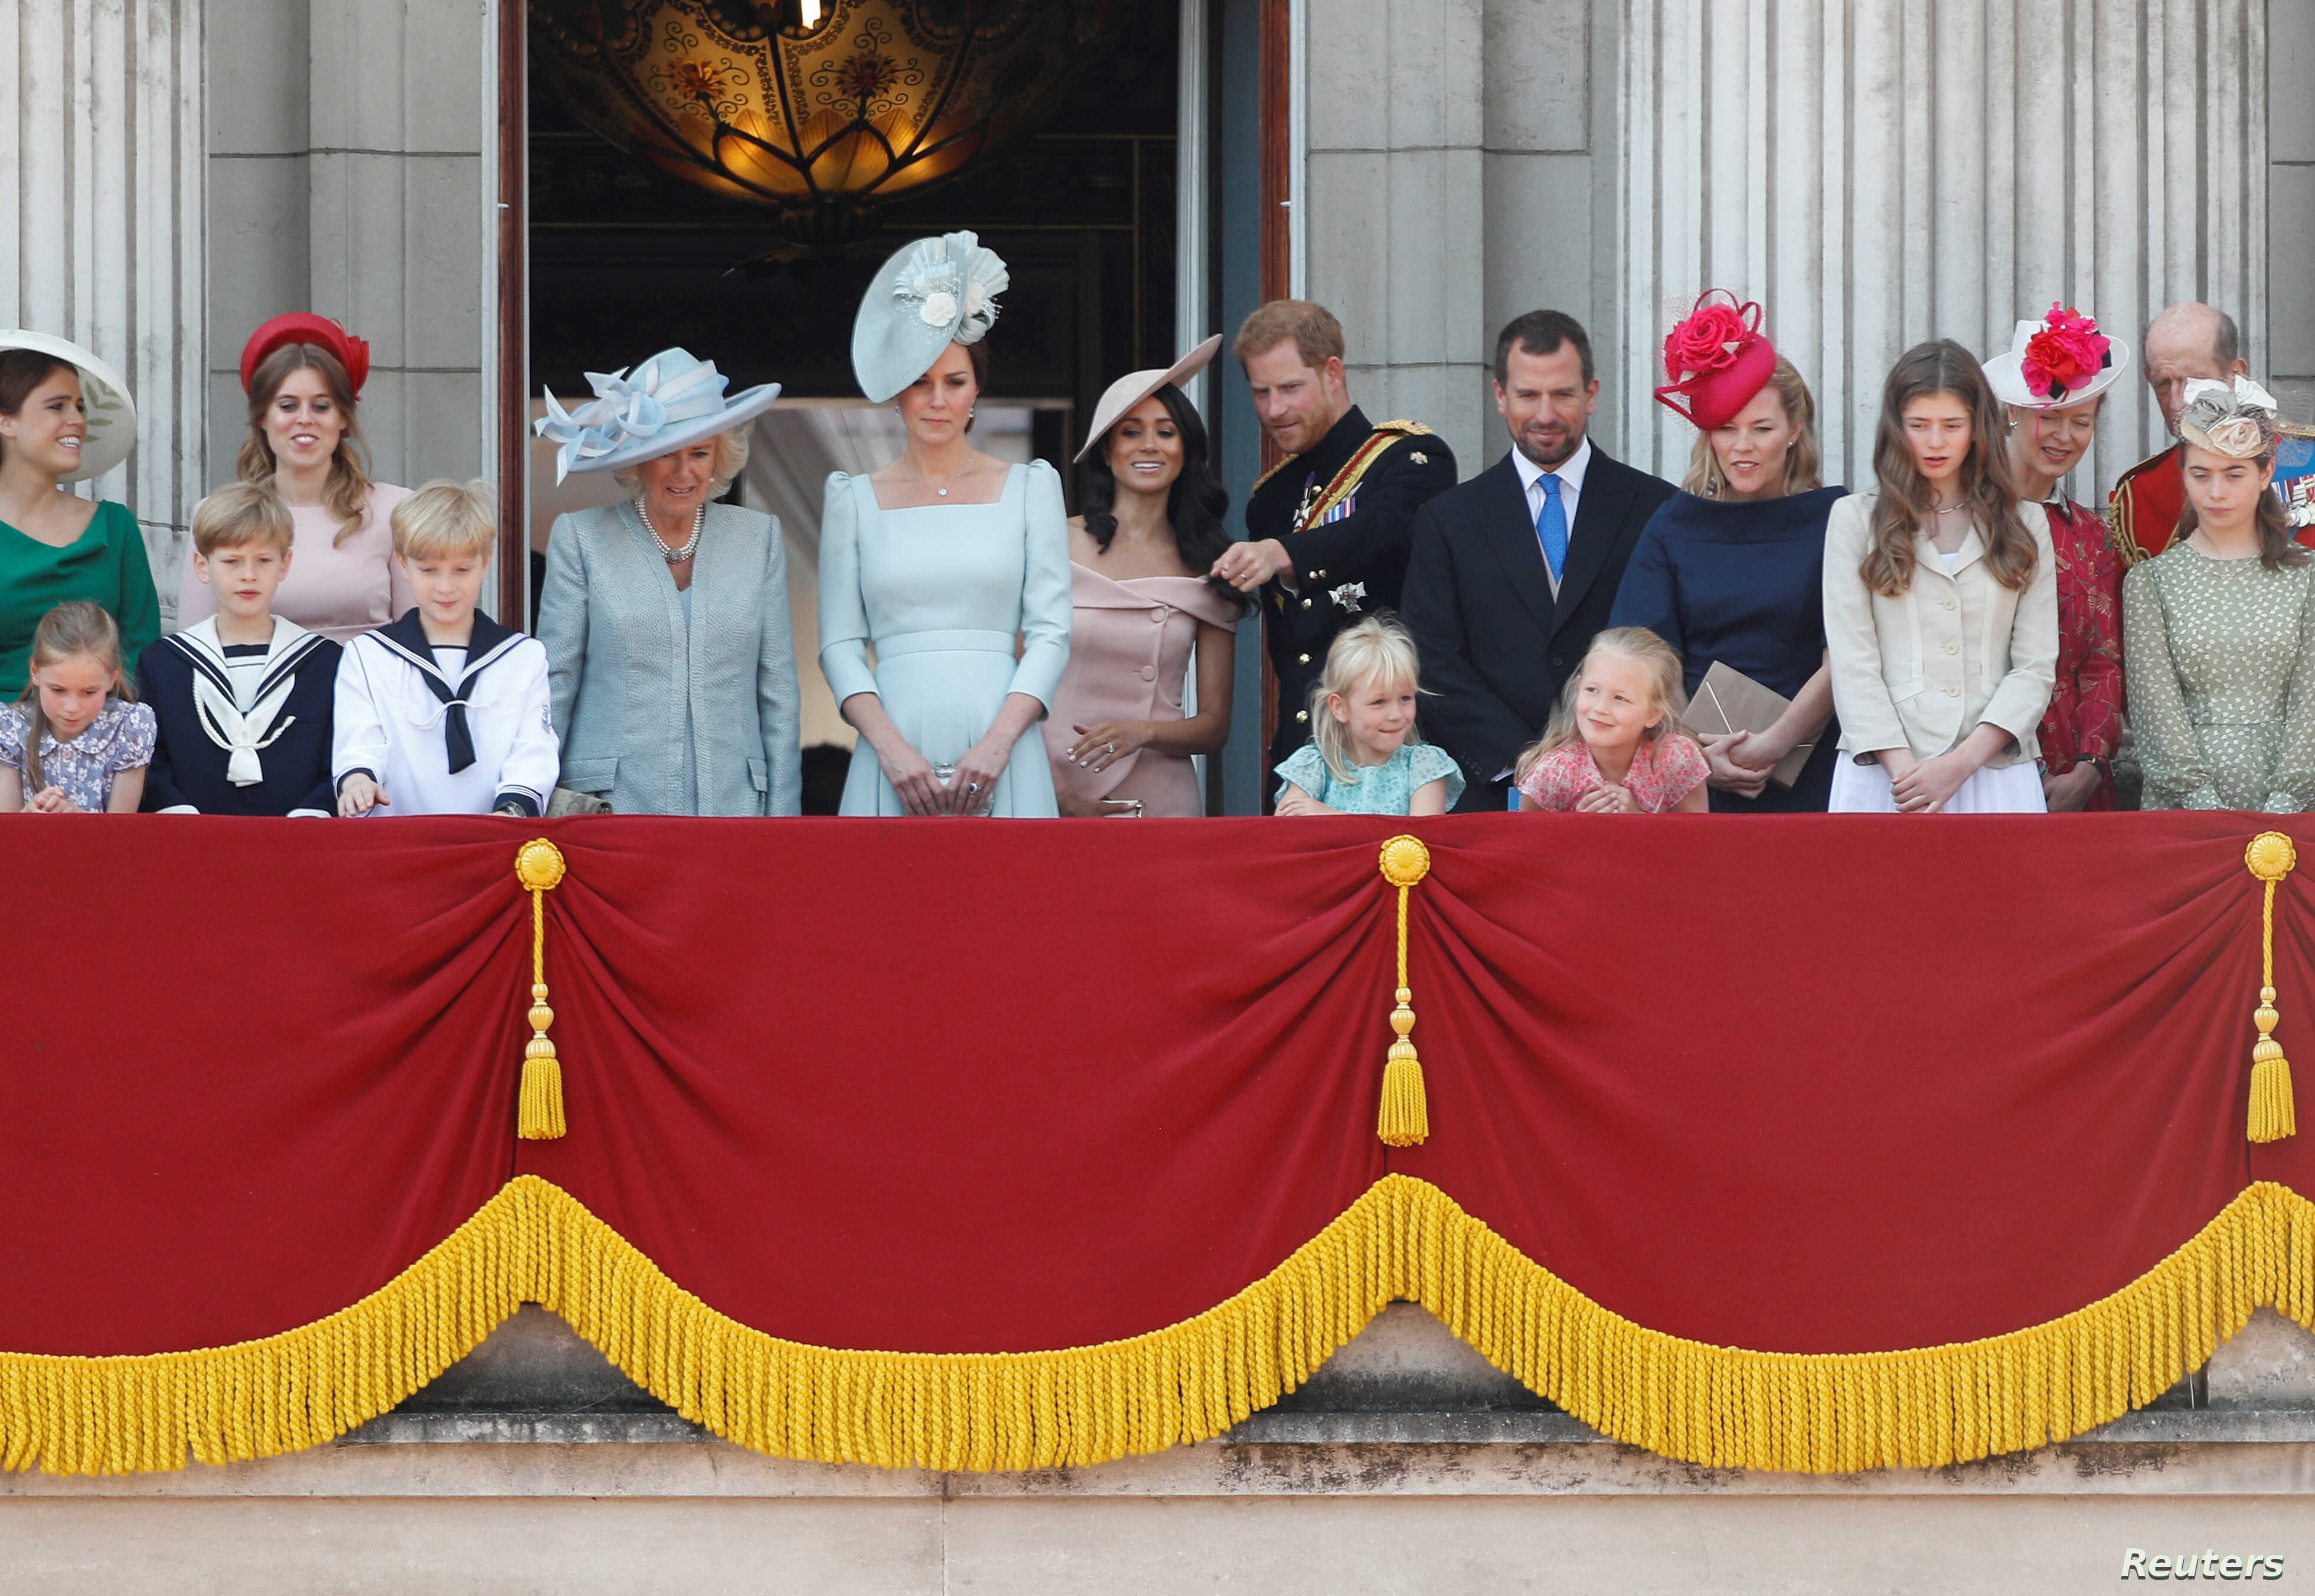 Britain's Prince Harry and Meghan, Duchess of Sussex, along with other members of the British royal family, look down into the palace courtyard from the balcony of Buckingham Palace as part of Trooping the Color parade in central London, Britain, Jun